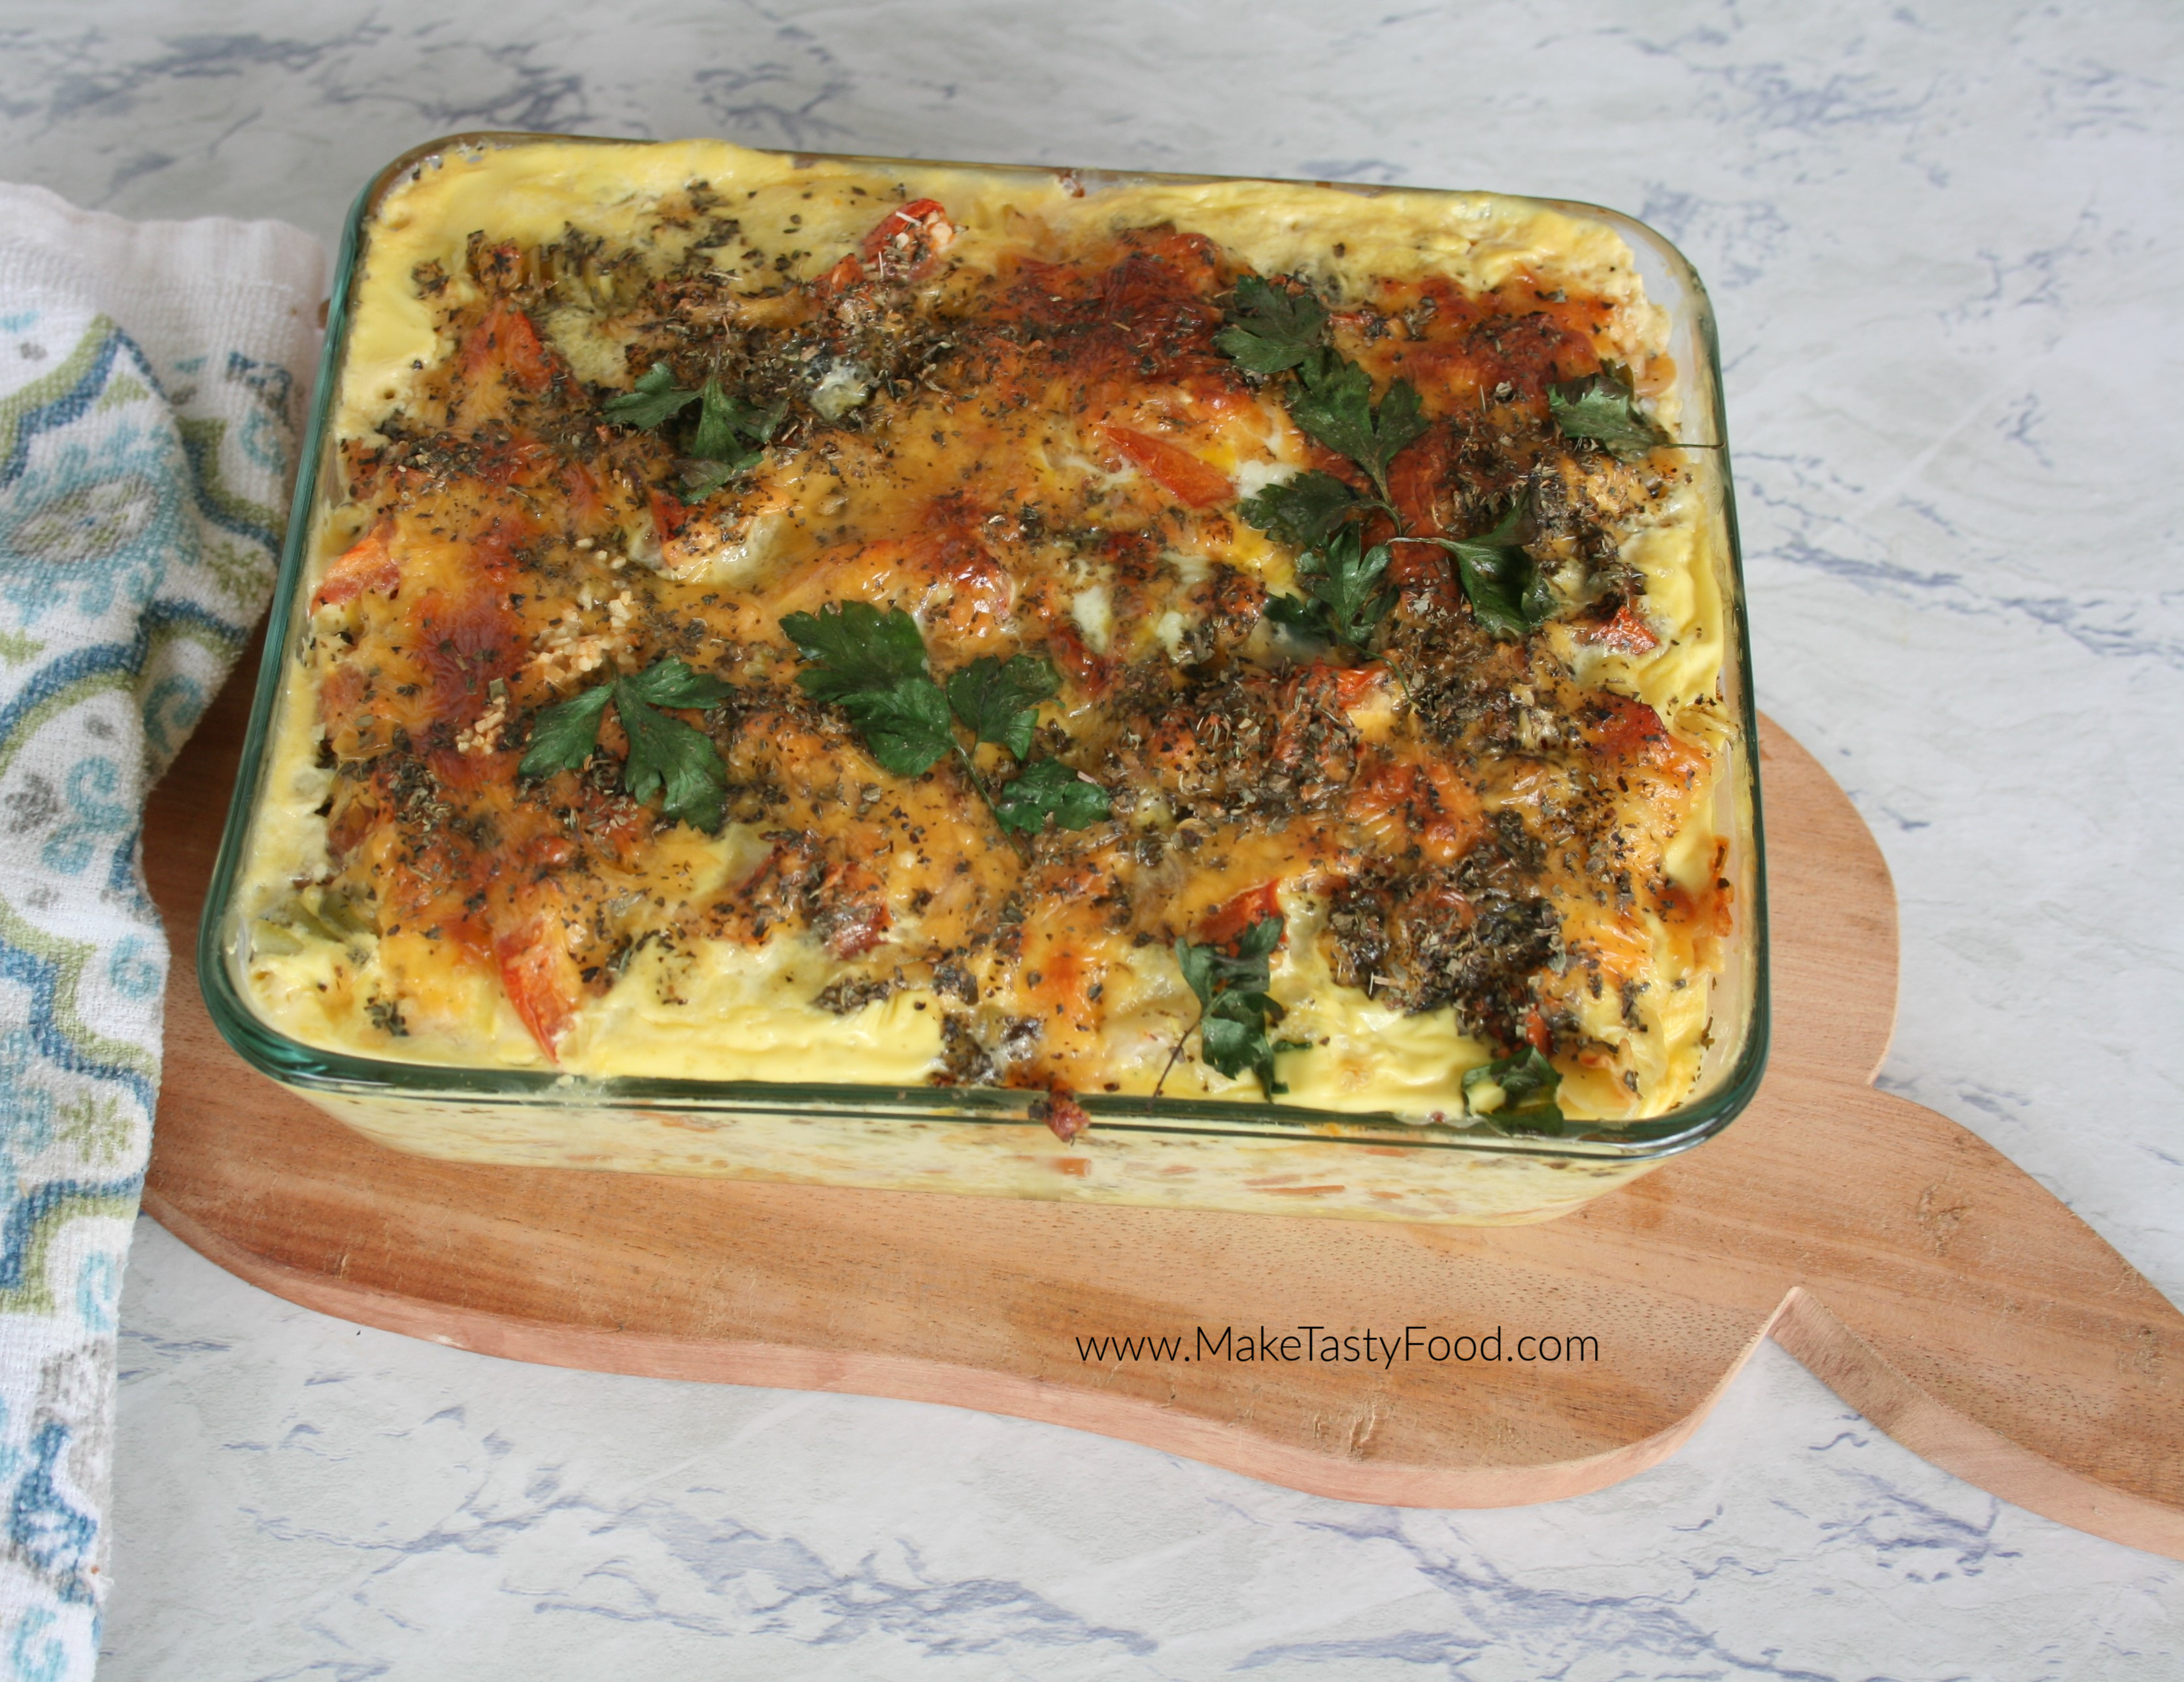 top view of the golden brown baked macaroni and cheese with parsley